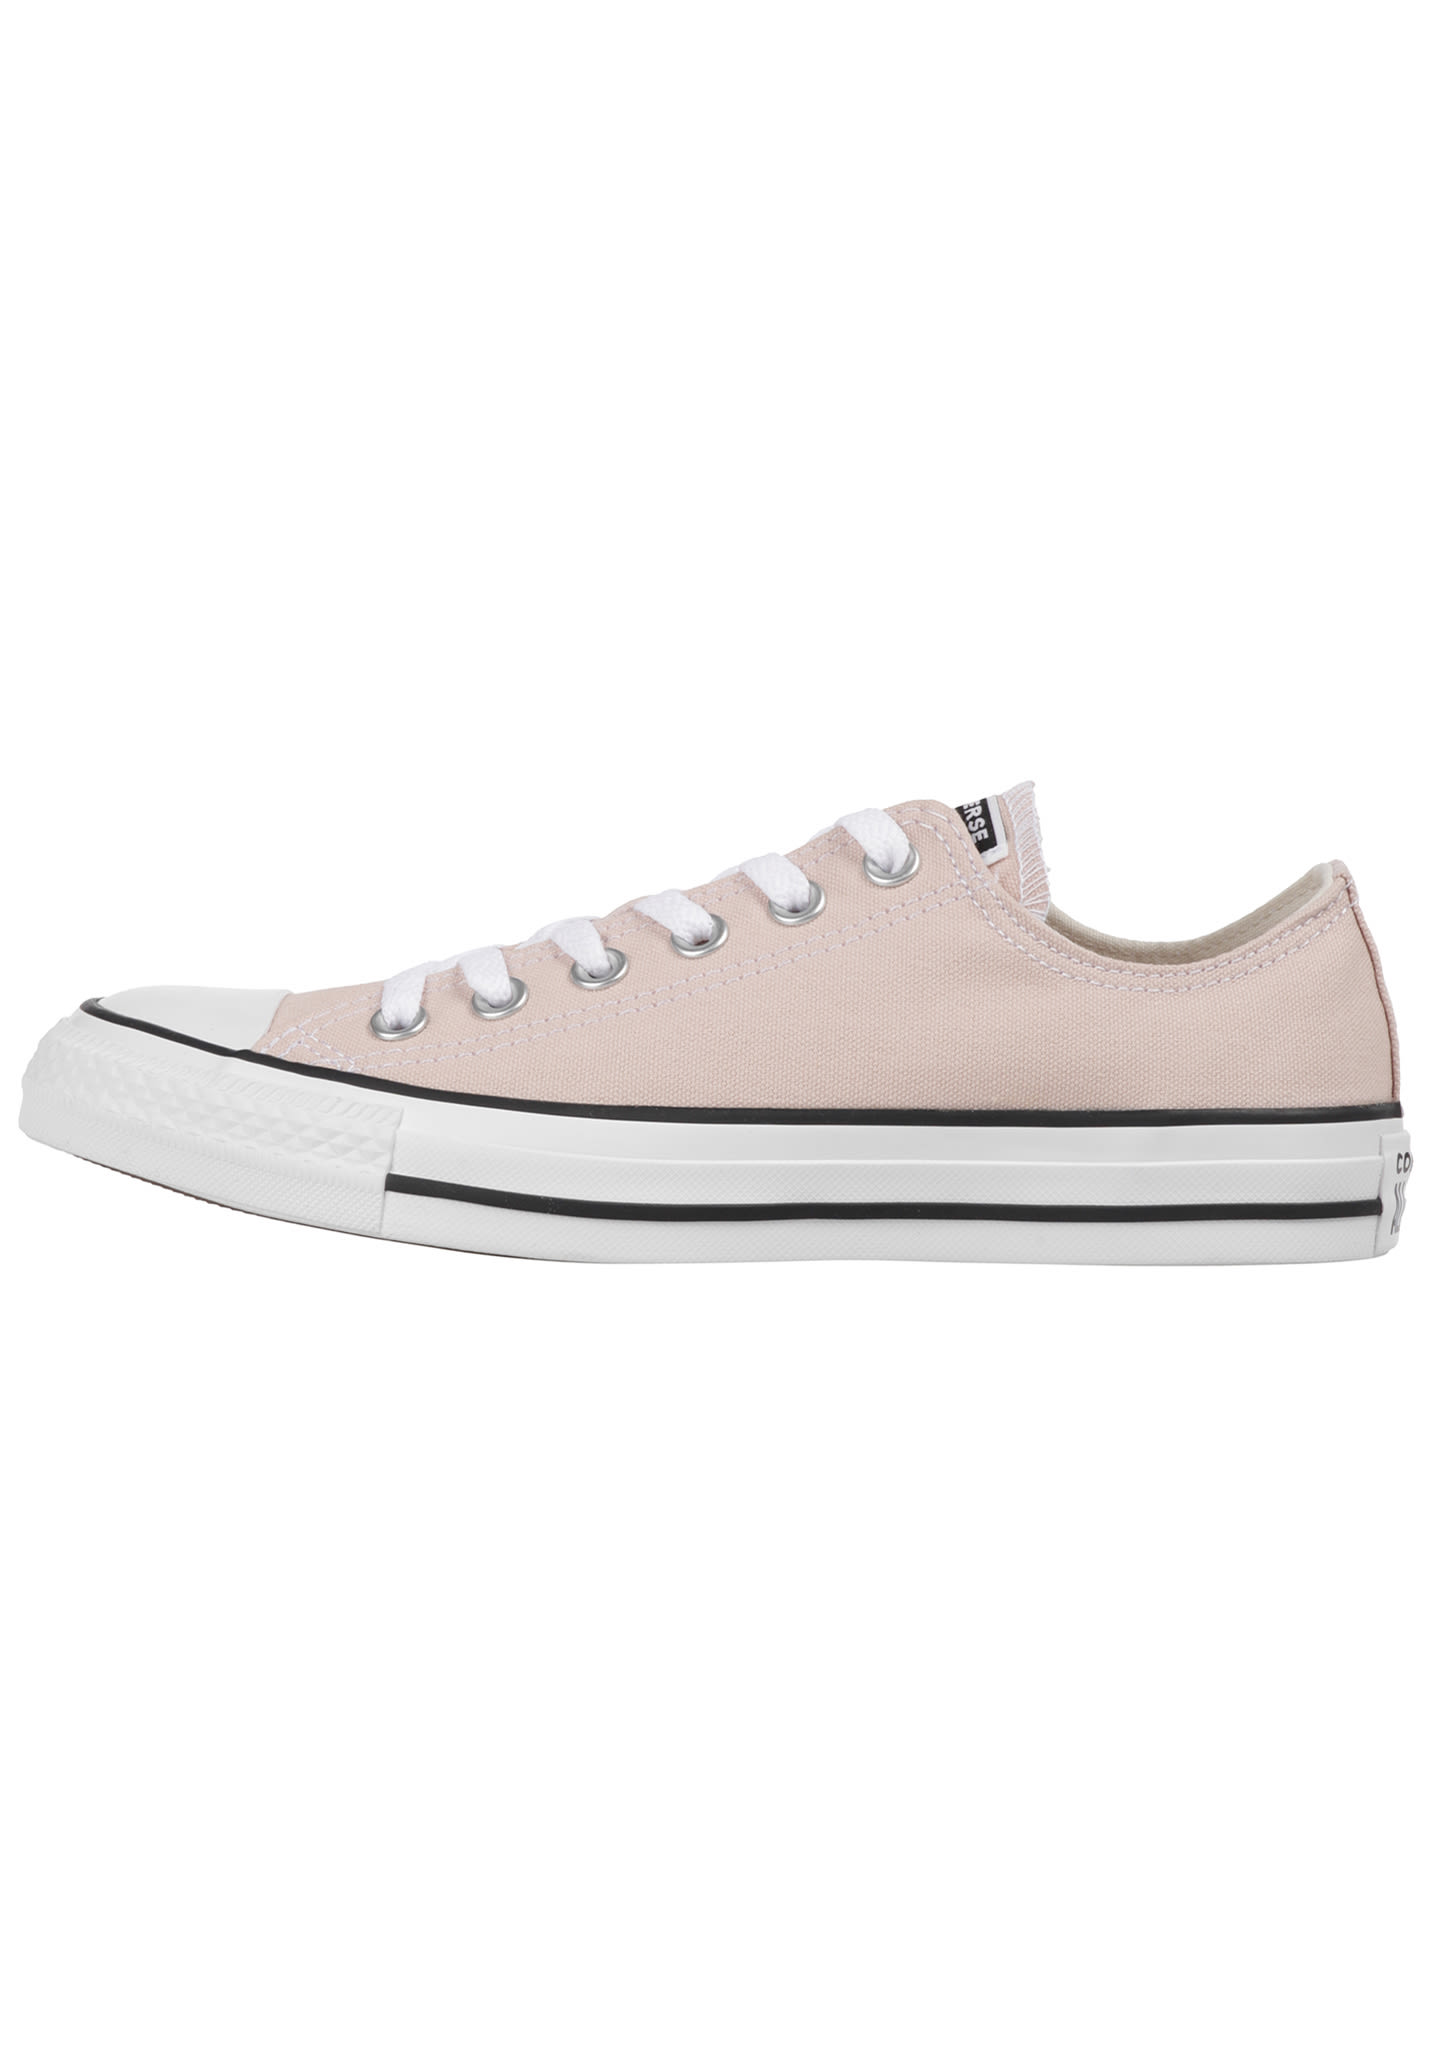 Converse All Star Sneaker beige Damen